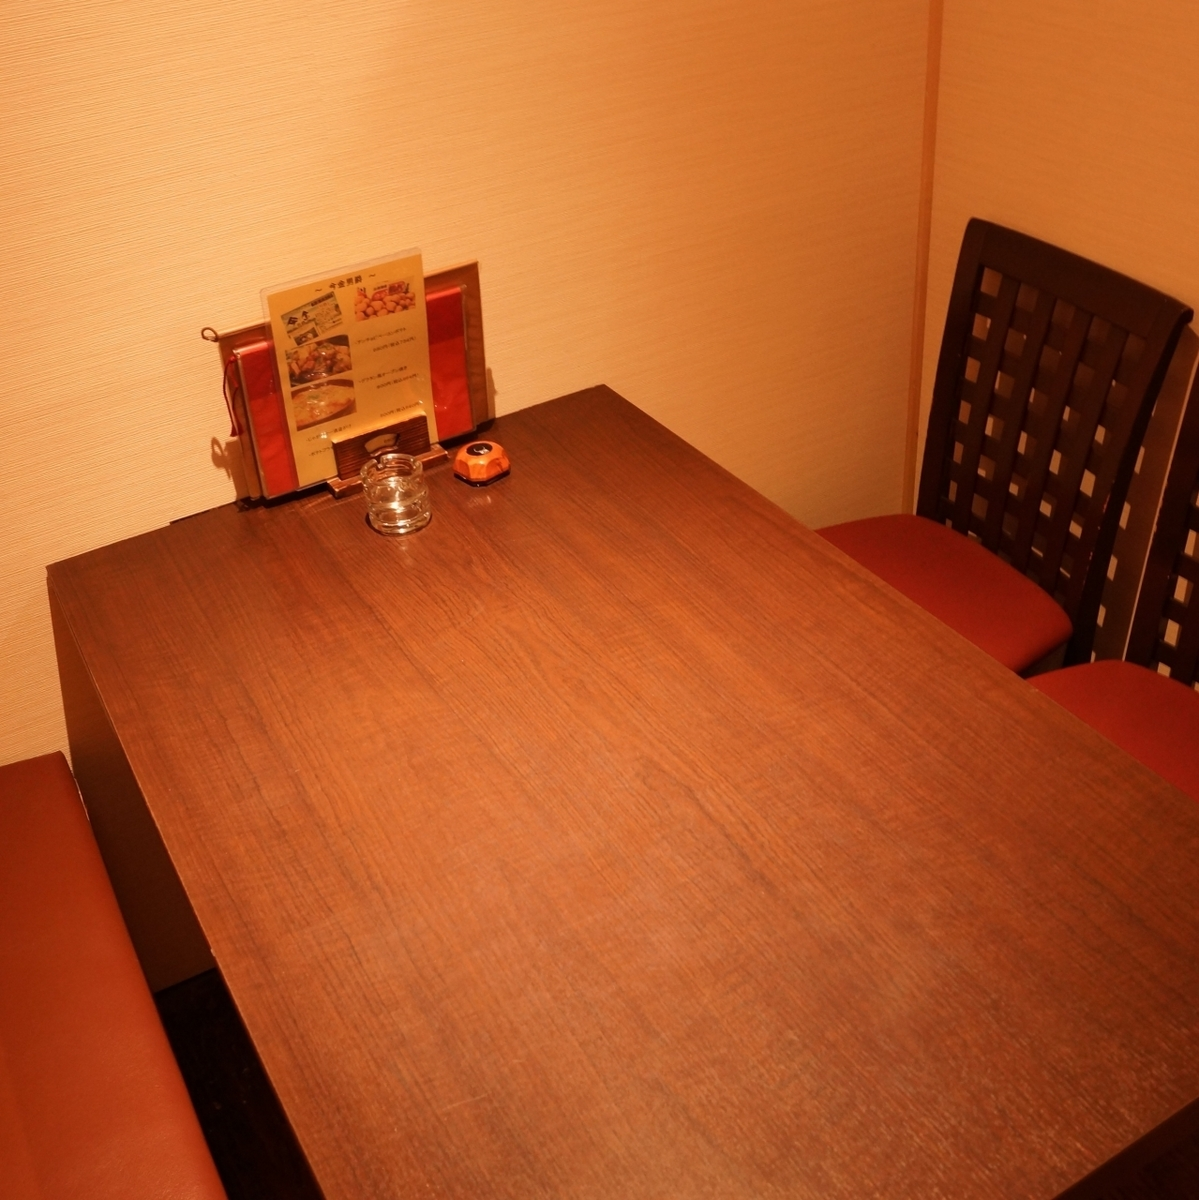 Private room in the table.You can relax without worrying about the surroundings